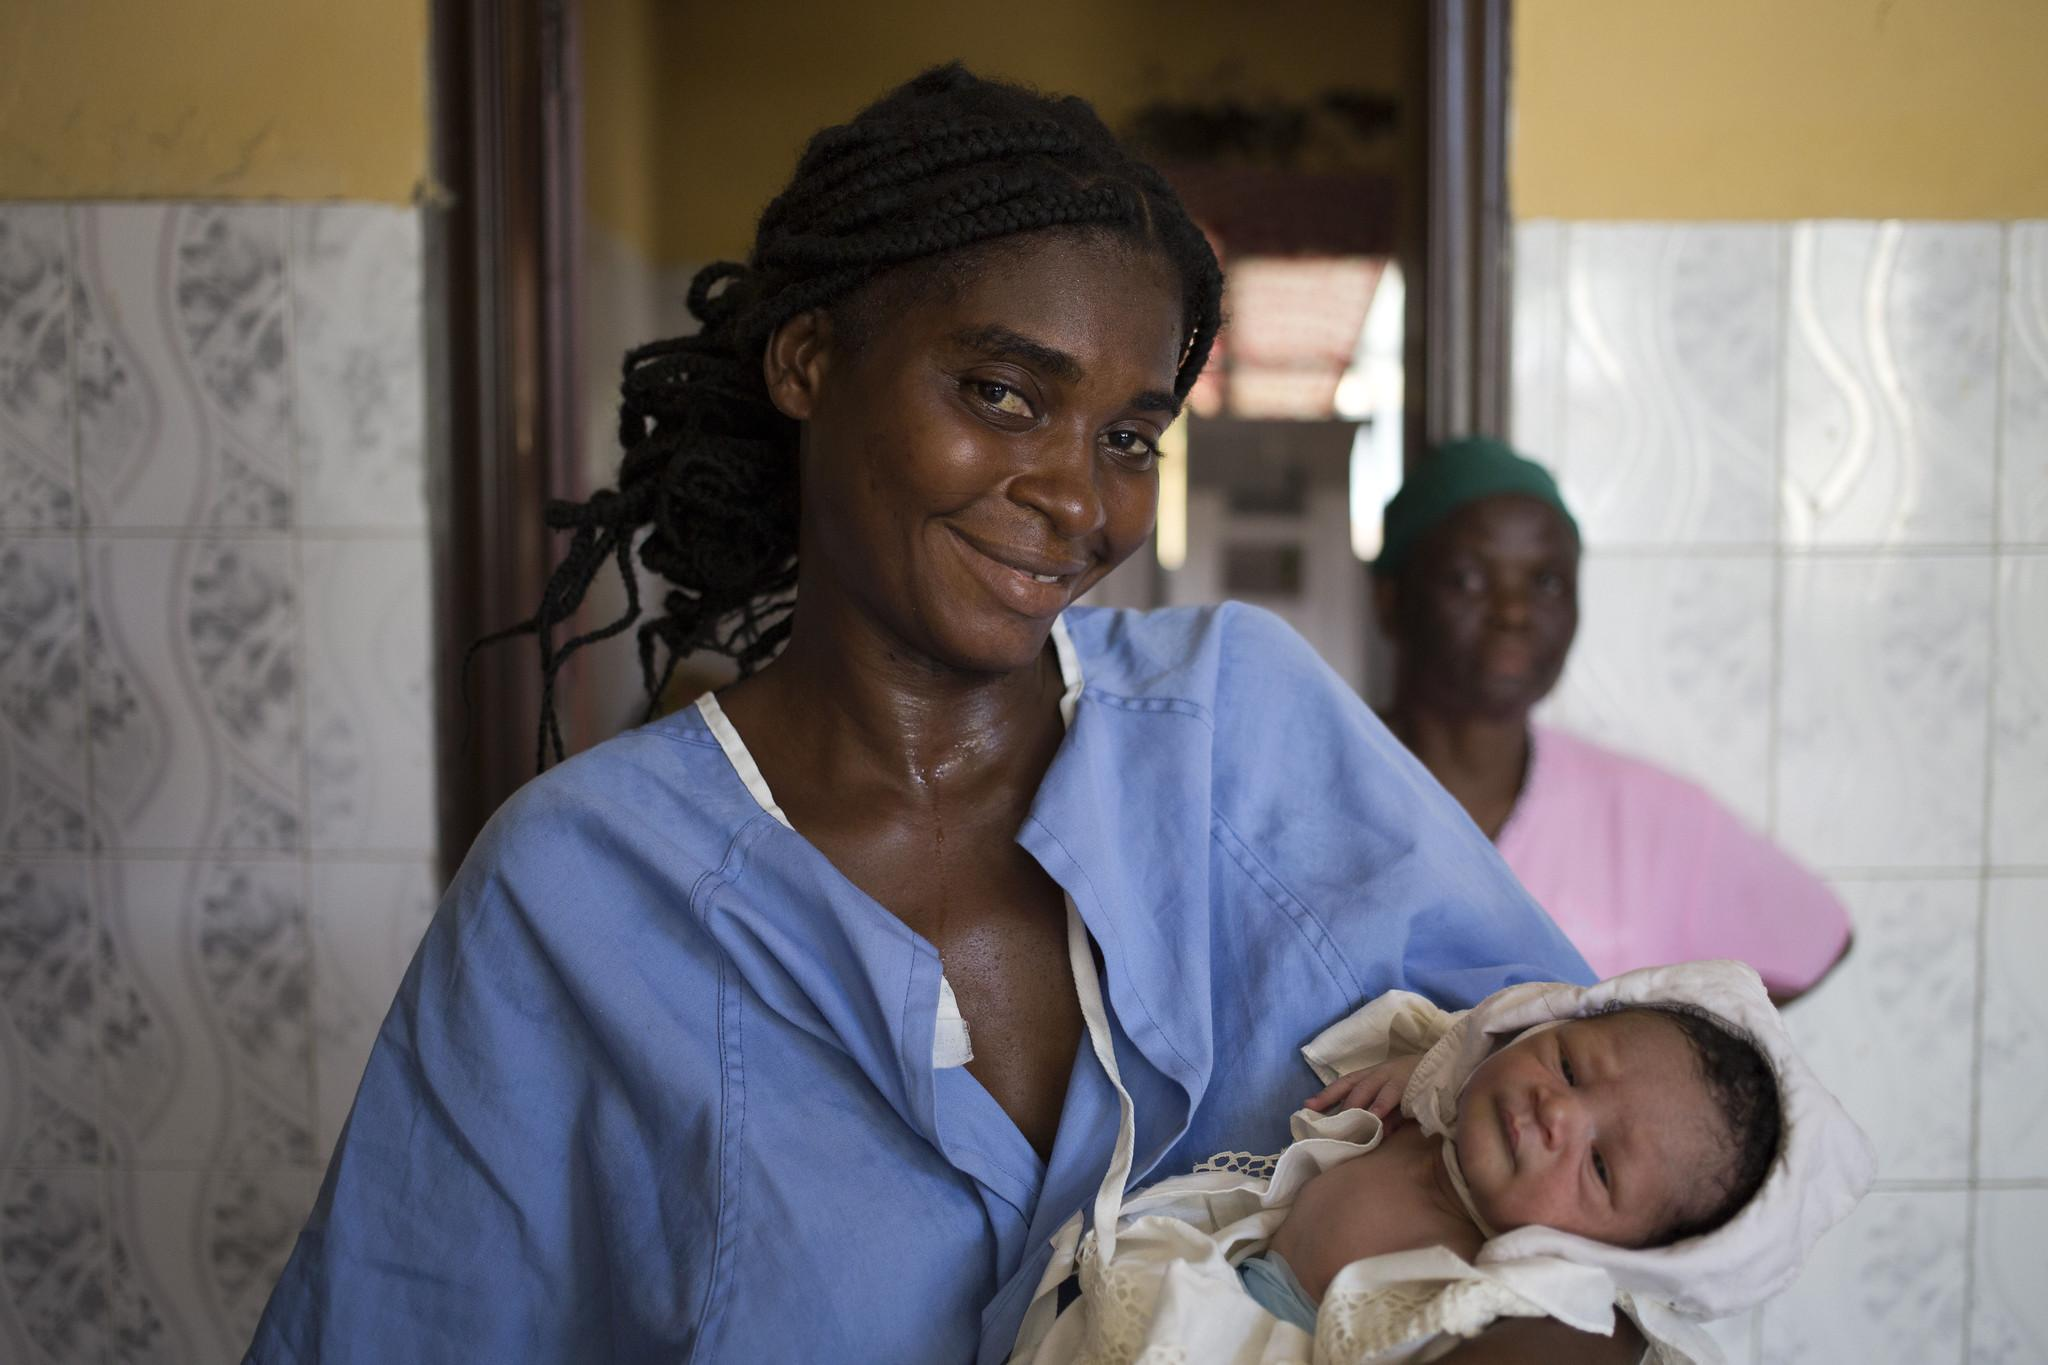 Female doctor holding new born baby